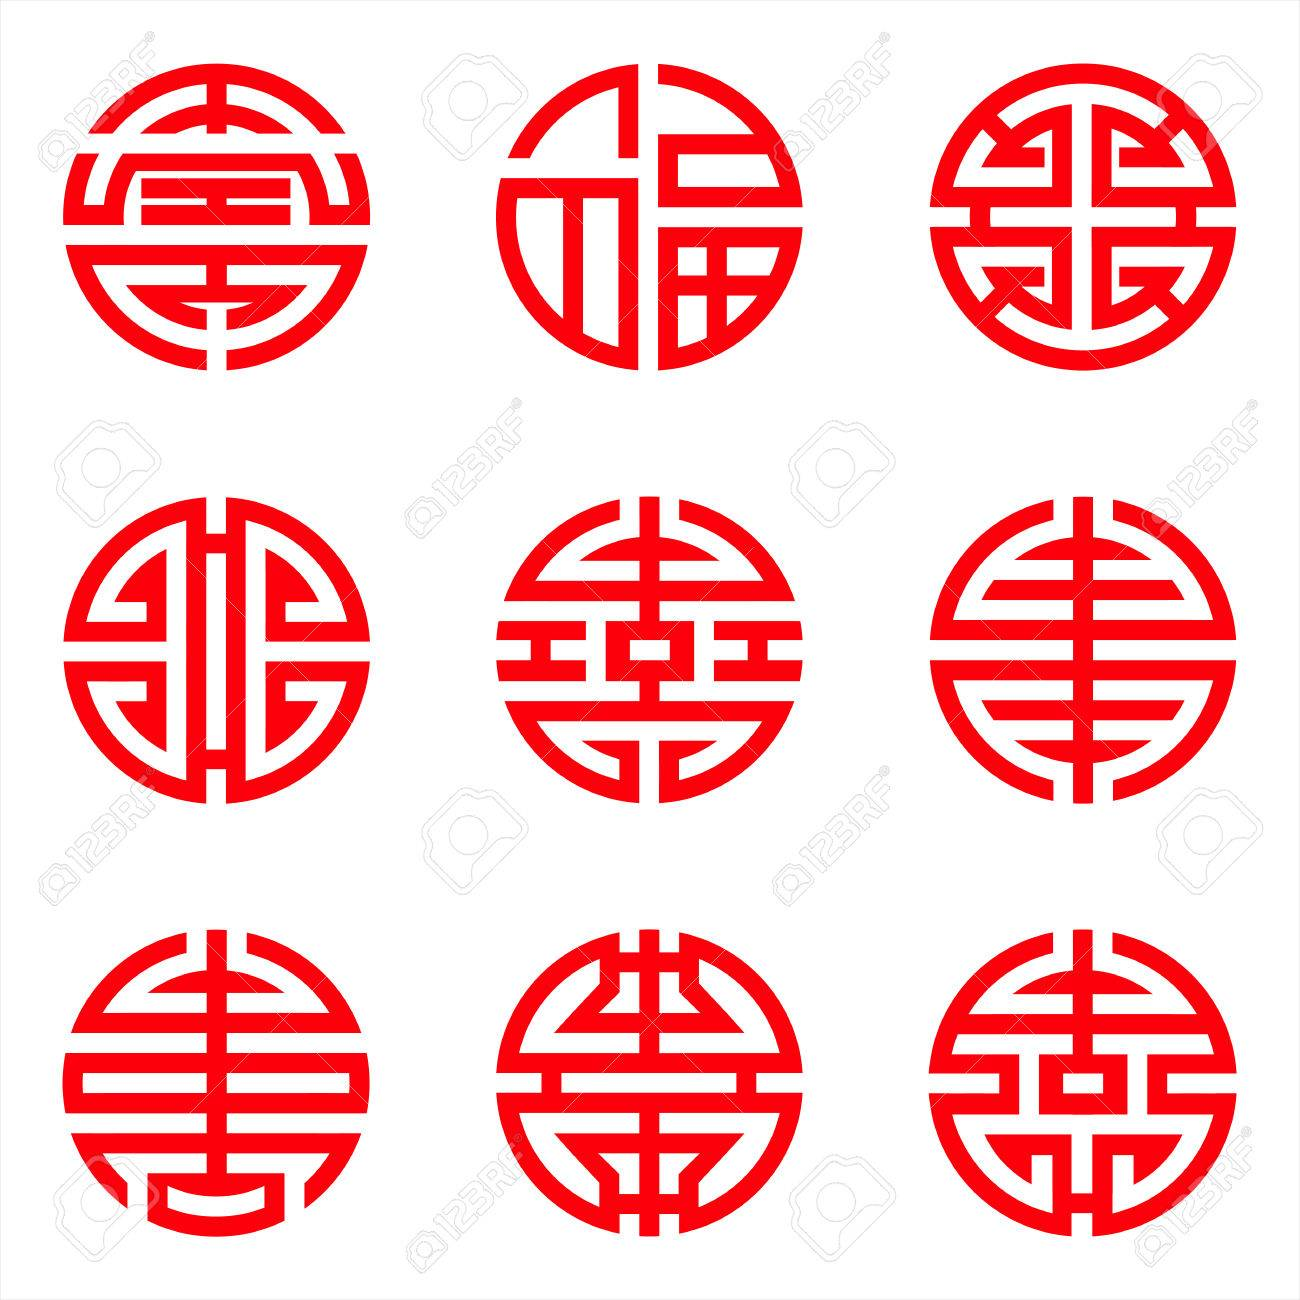 Traditional Chinese lucky symbols for bl-Traditional Chinese lucky symbols for blessing people having a long-life  Stock Vector - 68402404-18